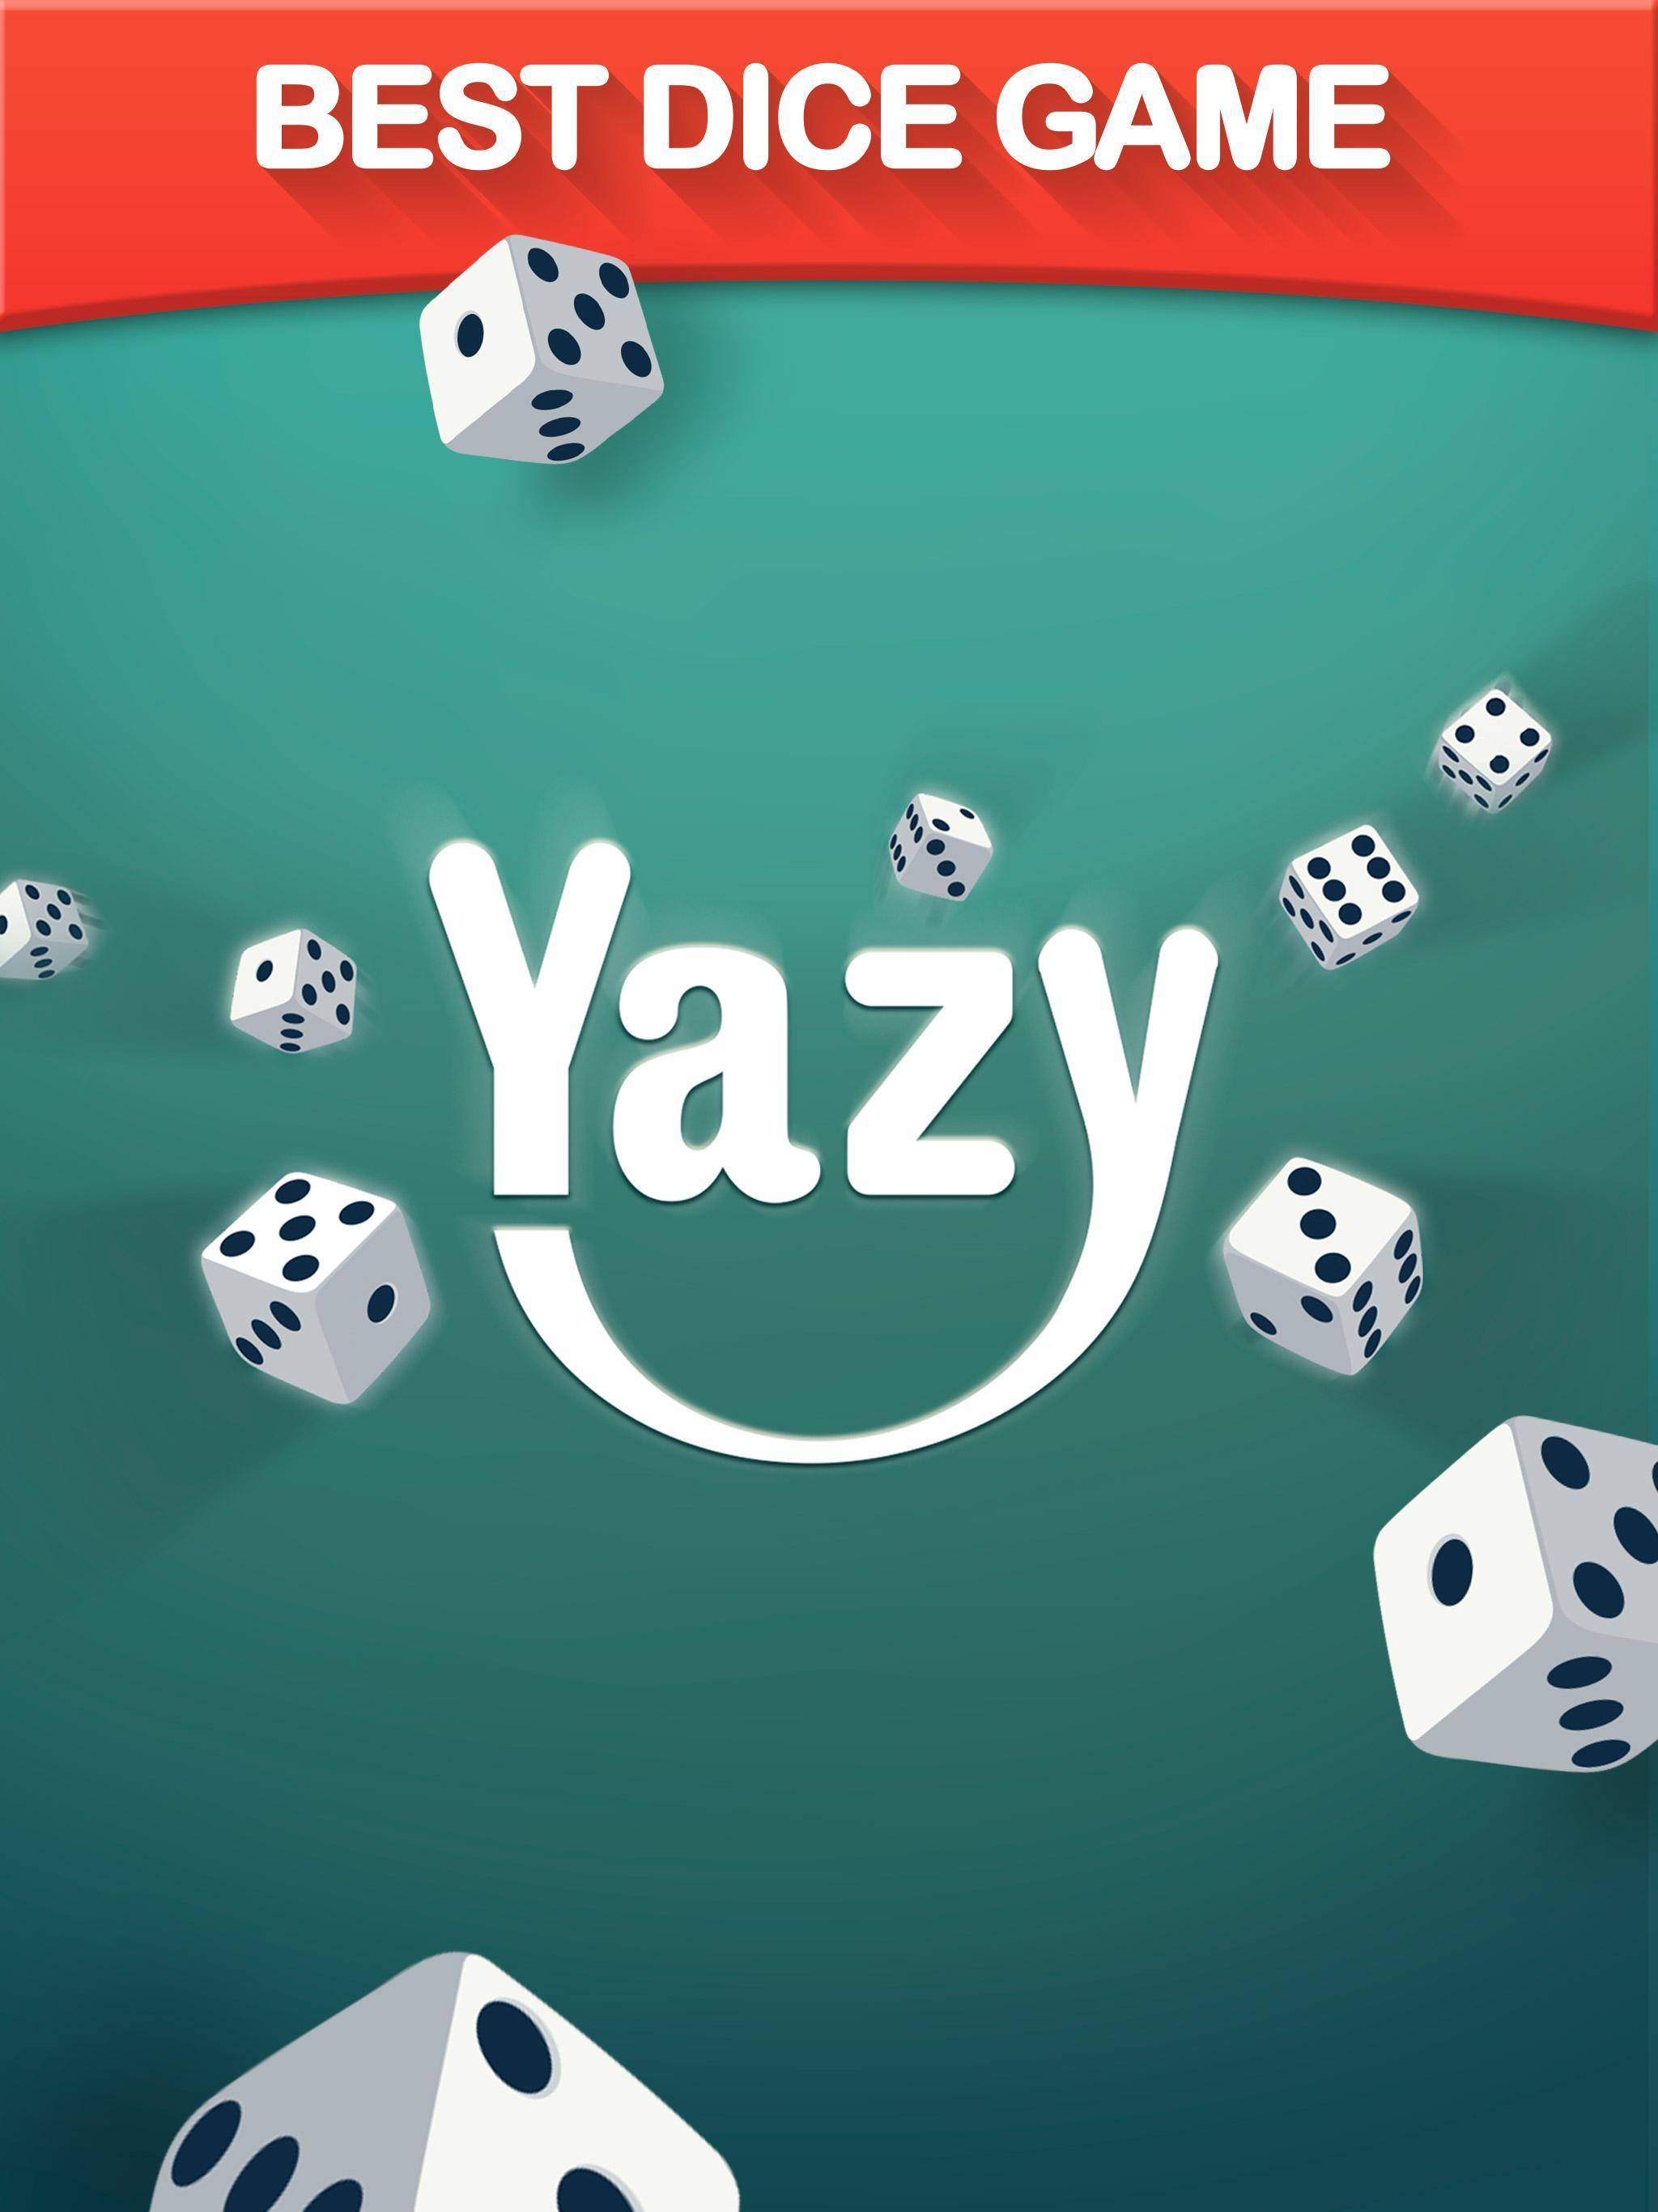 Yazy the best yatzy dice game 1.0.34 Screenshot 15